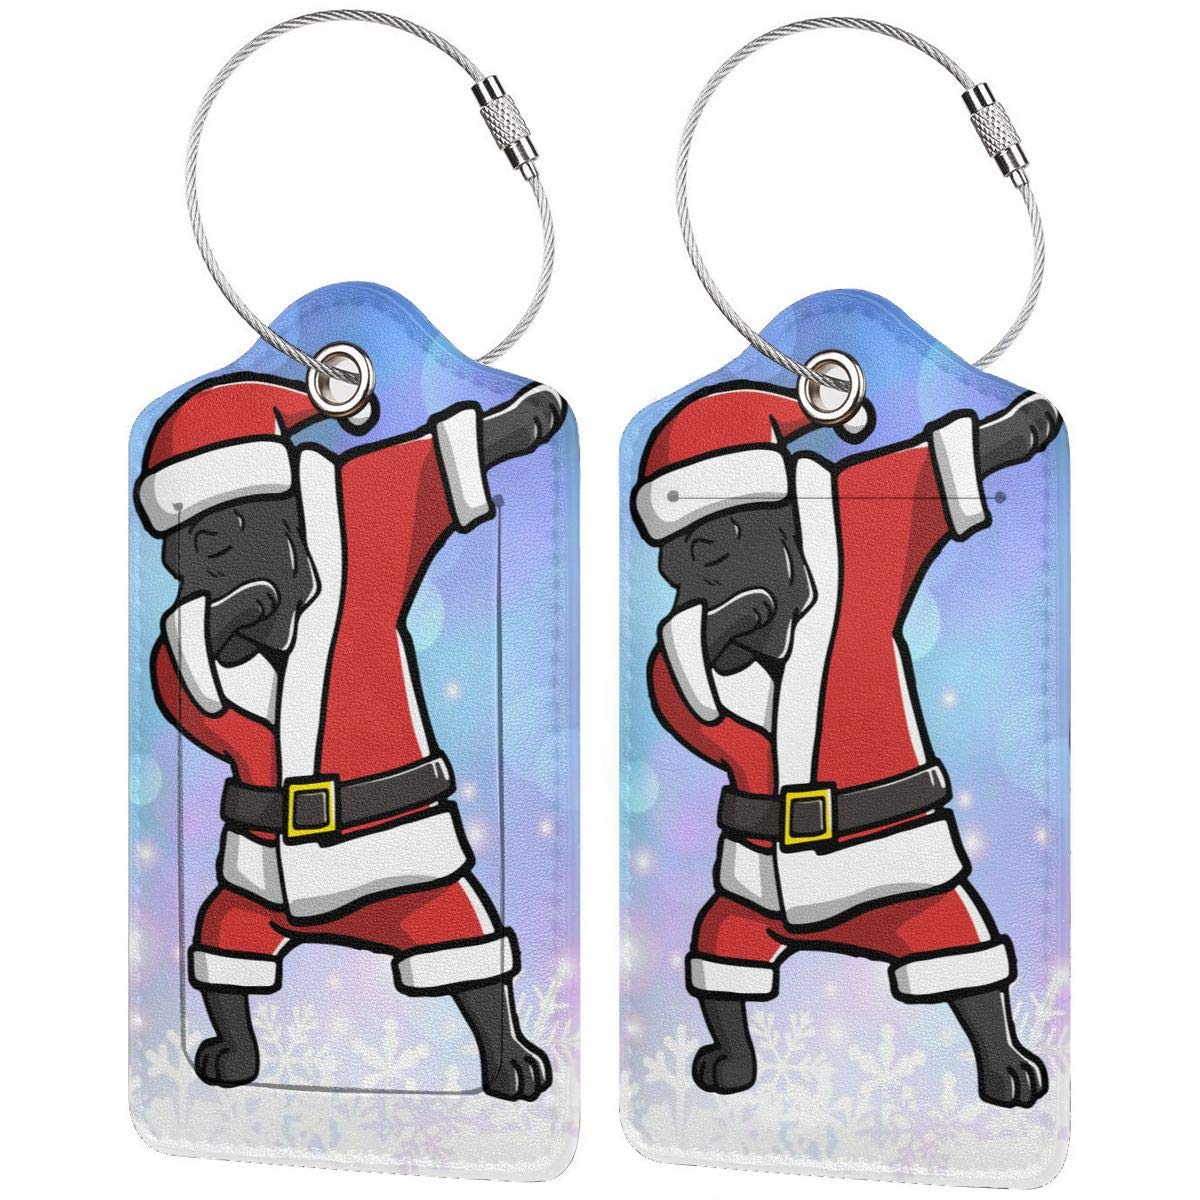 Dabbing Cane Corso Ugly Christmas Travel Luggage Tags With Full Privacy Cover Leather Case And Stainless Steel Loop